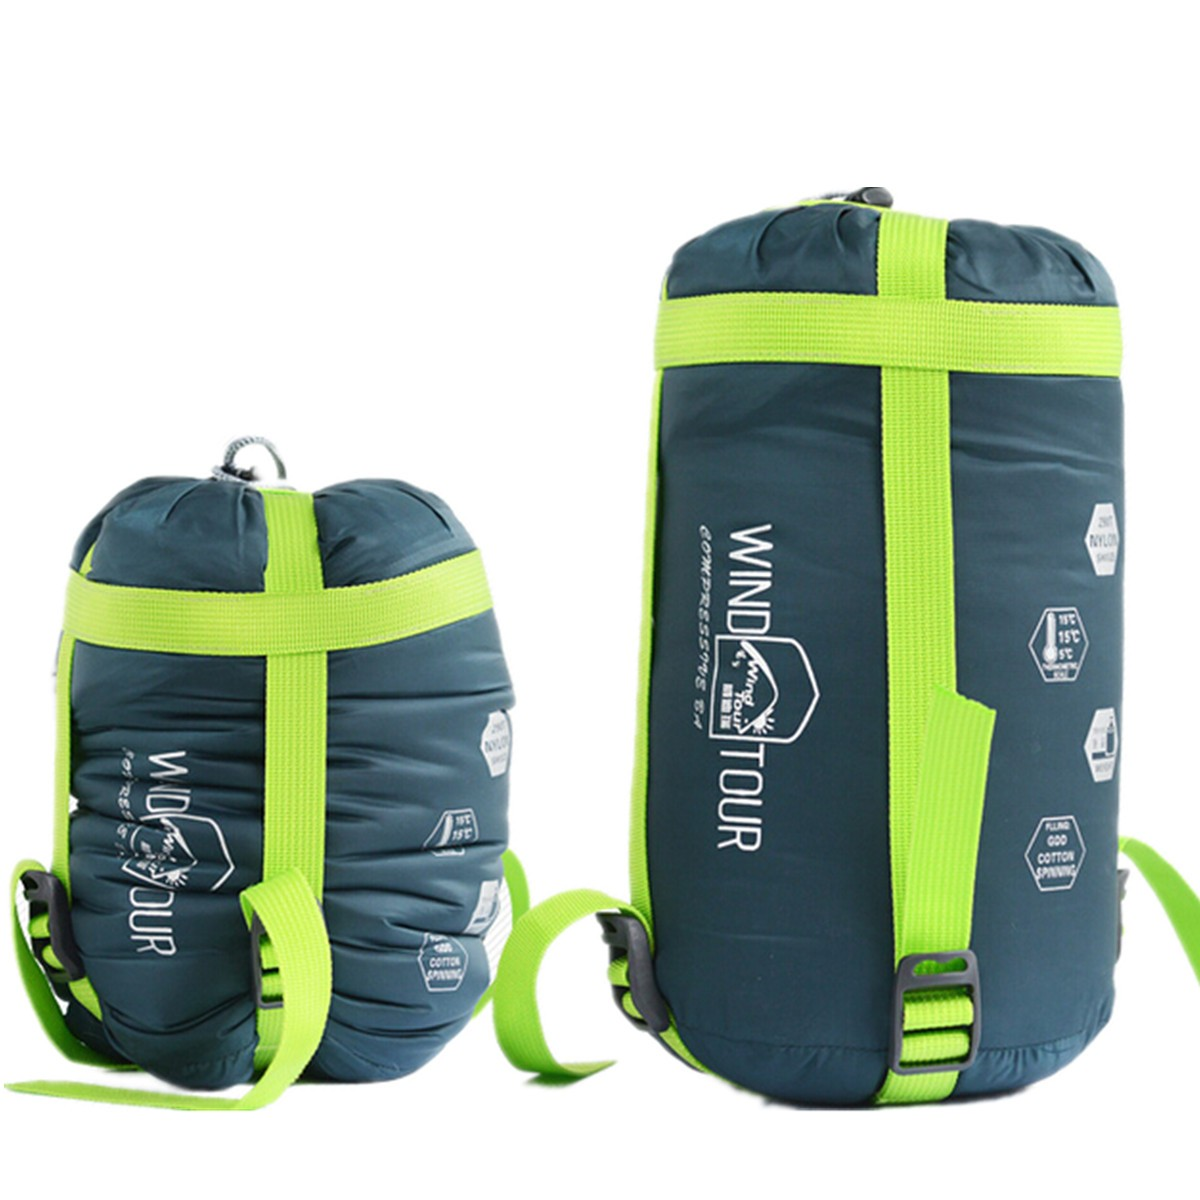 Ultralight Nylon Sleeping Bags with Compression Packet –  spring/autumn